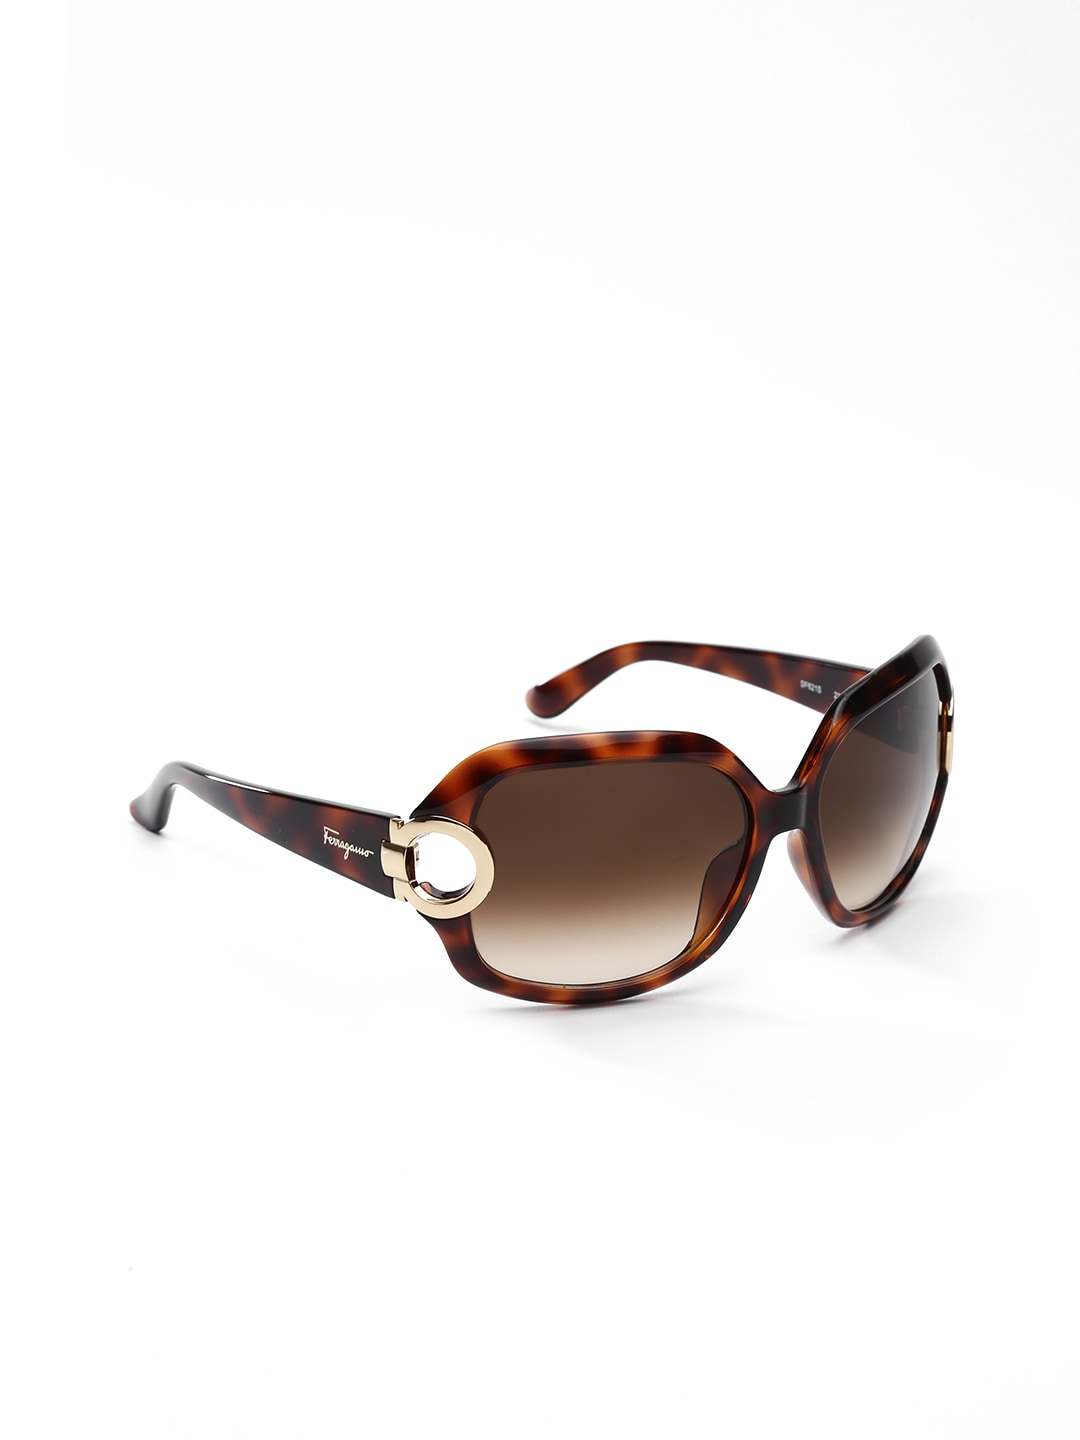 Salvatore Ferragamo Women Printed Oversized Sunglasses SF621S 238